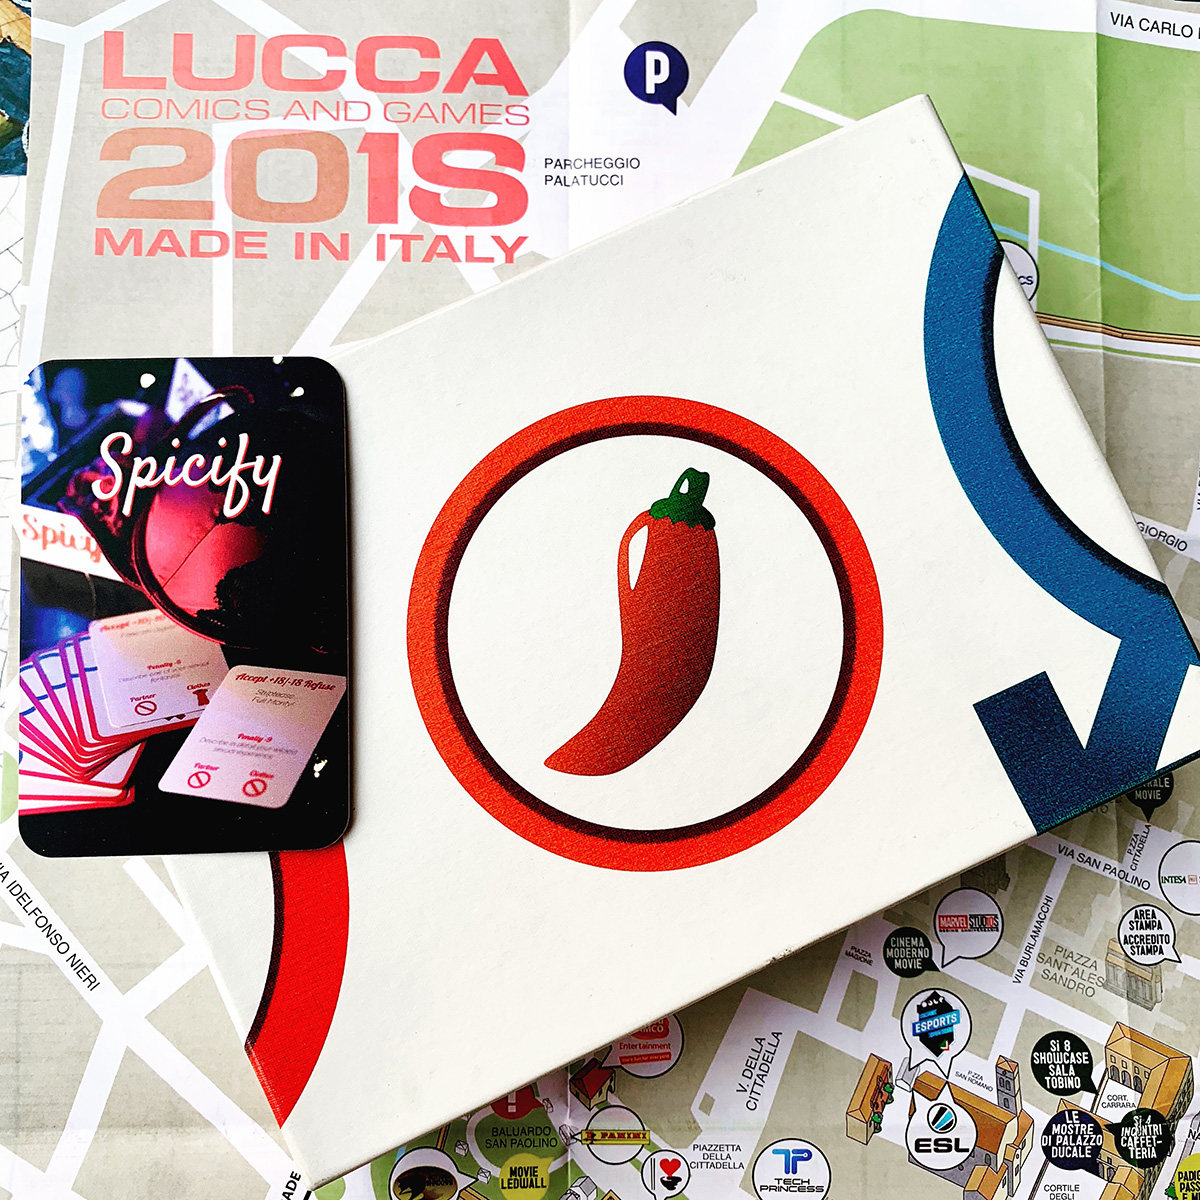 Spicify at Lucca Comics and Games 2018